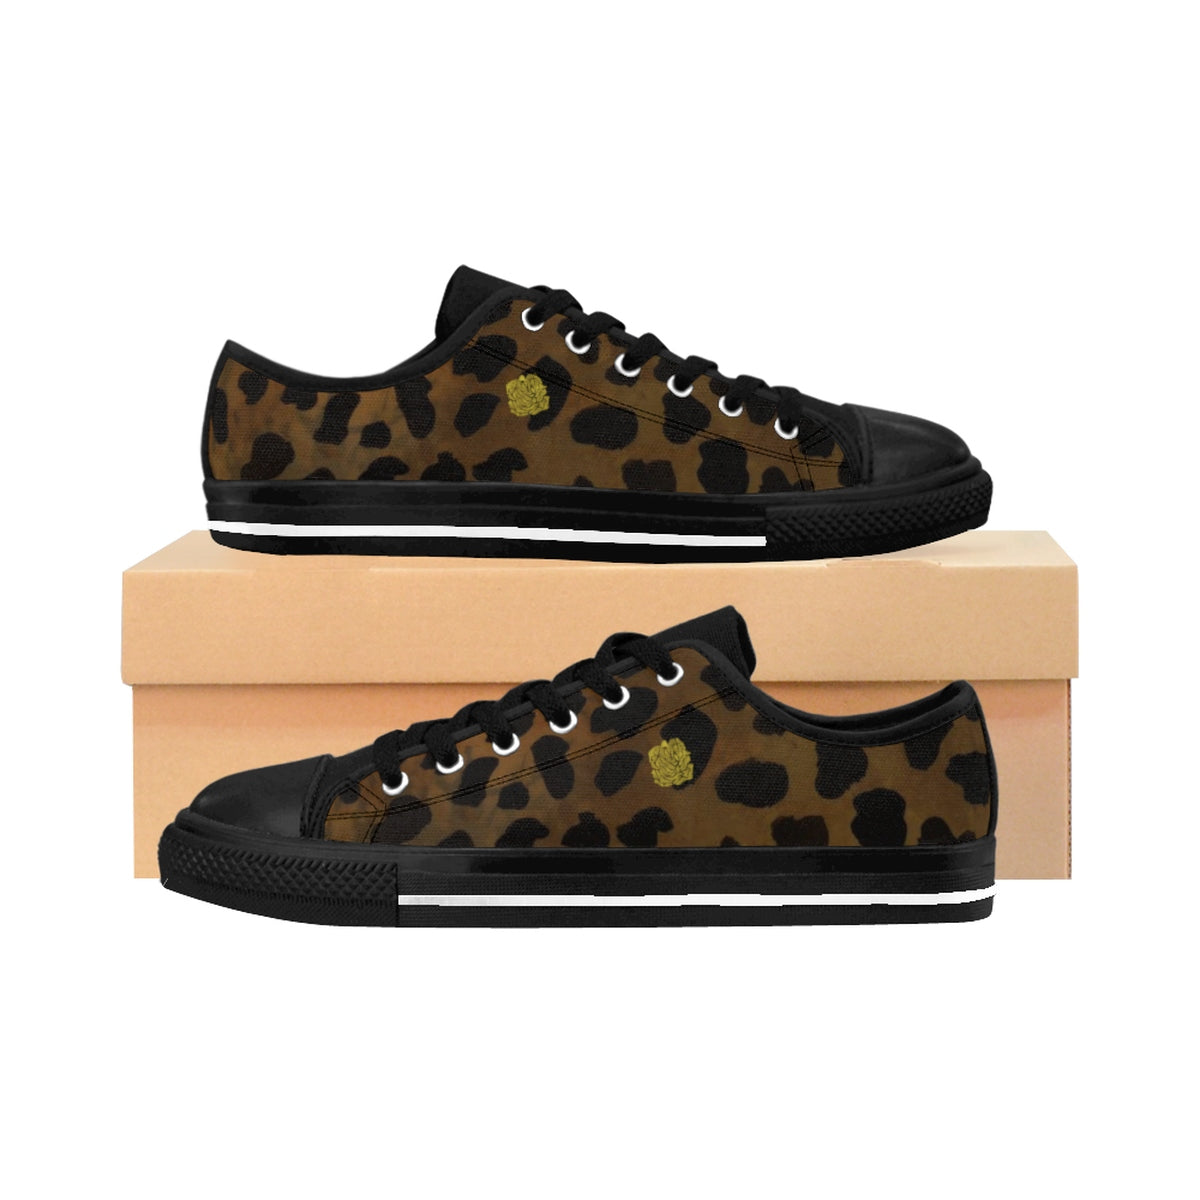 Brown Leopard Cheetah Animal Print Lightweight Men's Fashion Canvas Sneakers Shoes-Men's Low Top Sneakers-Black-US 9-Heidi Kimura Art LLC